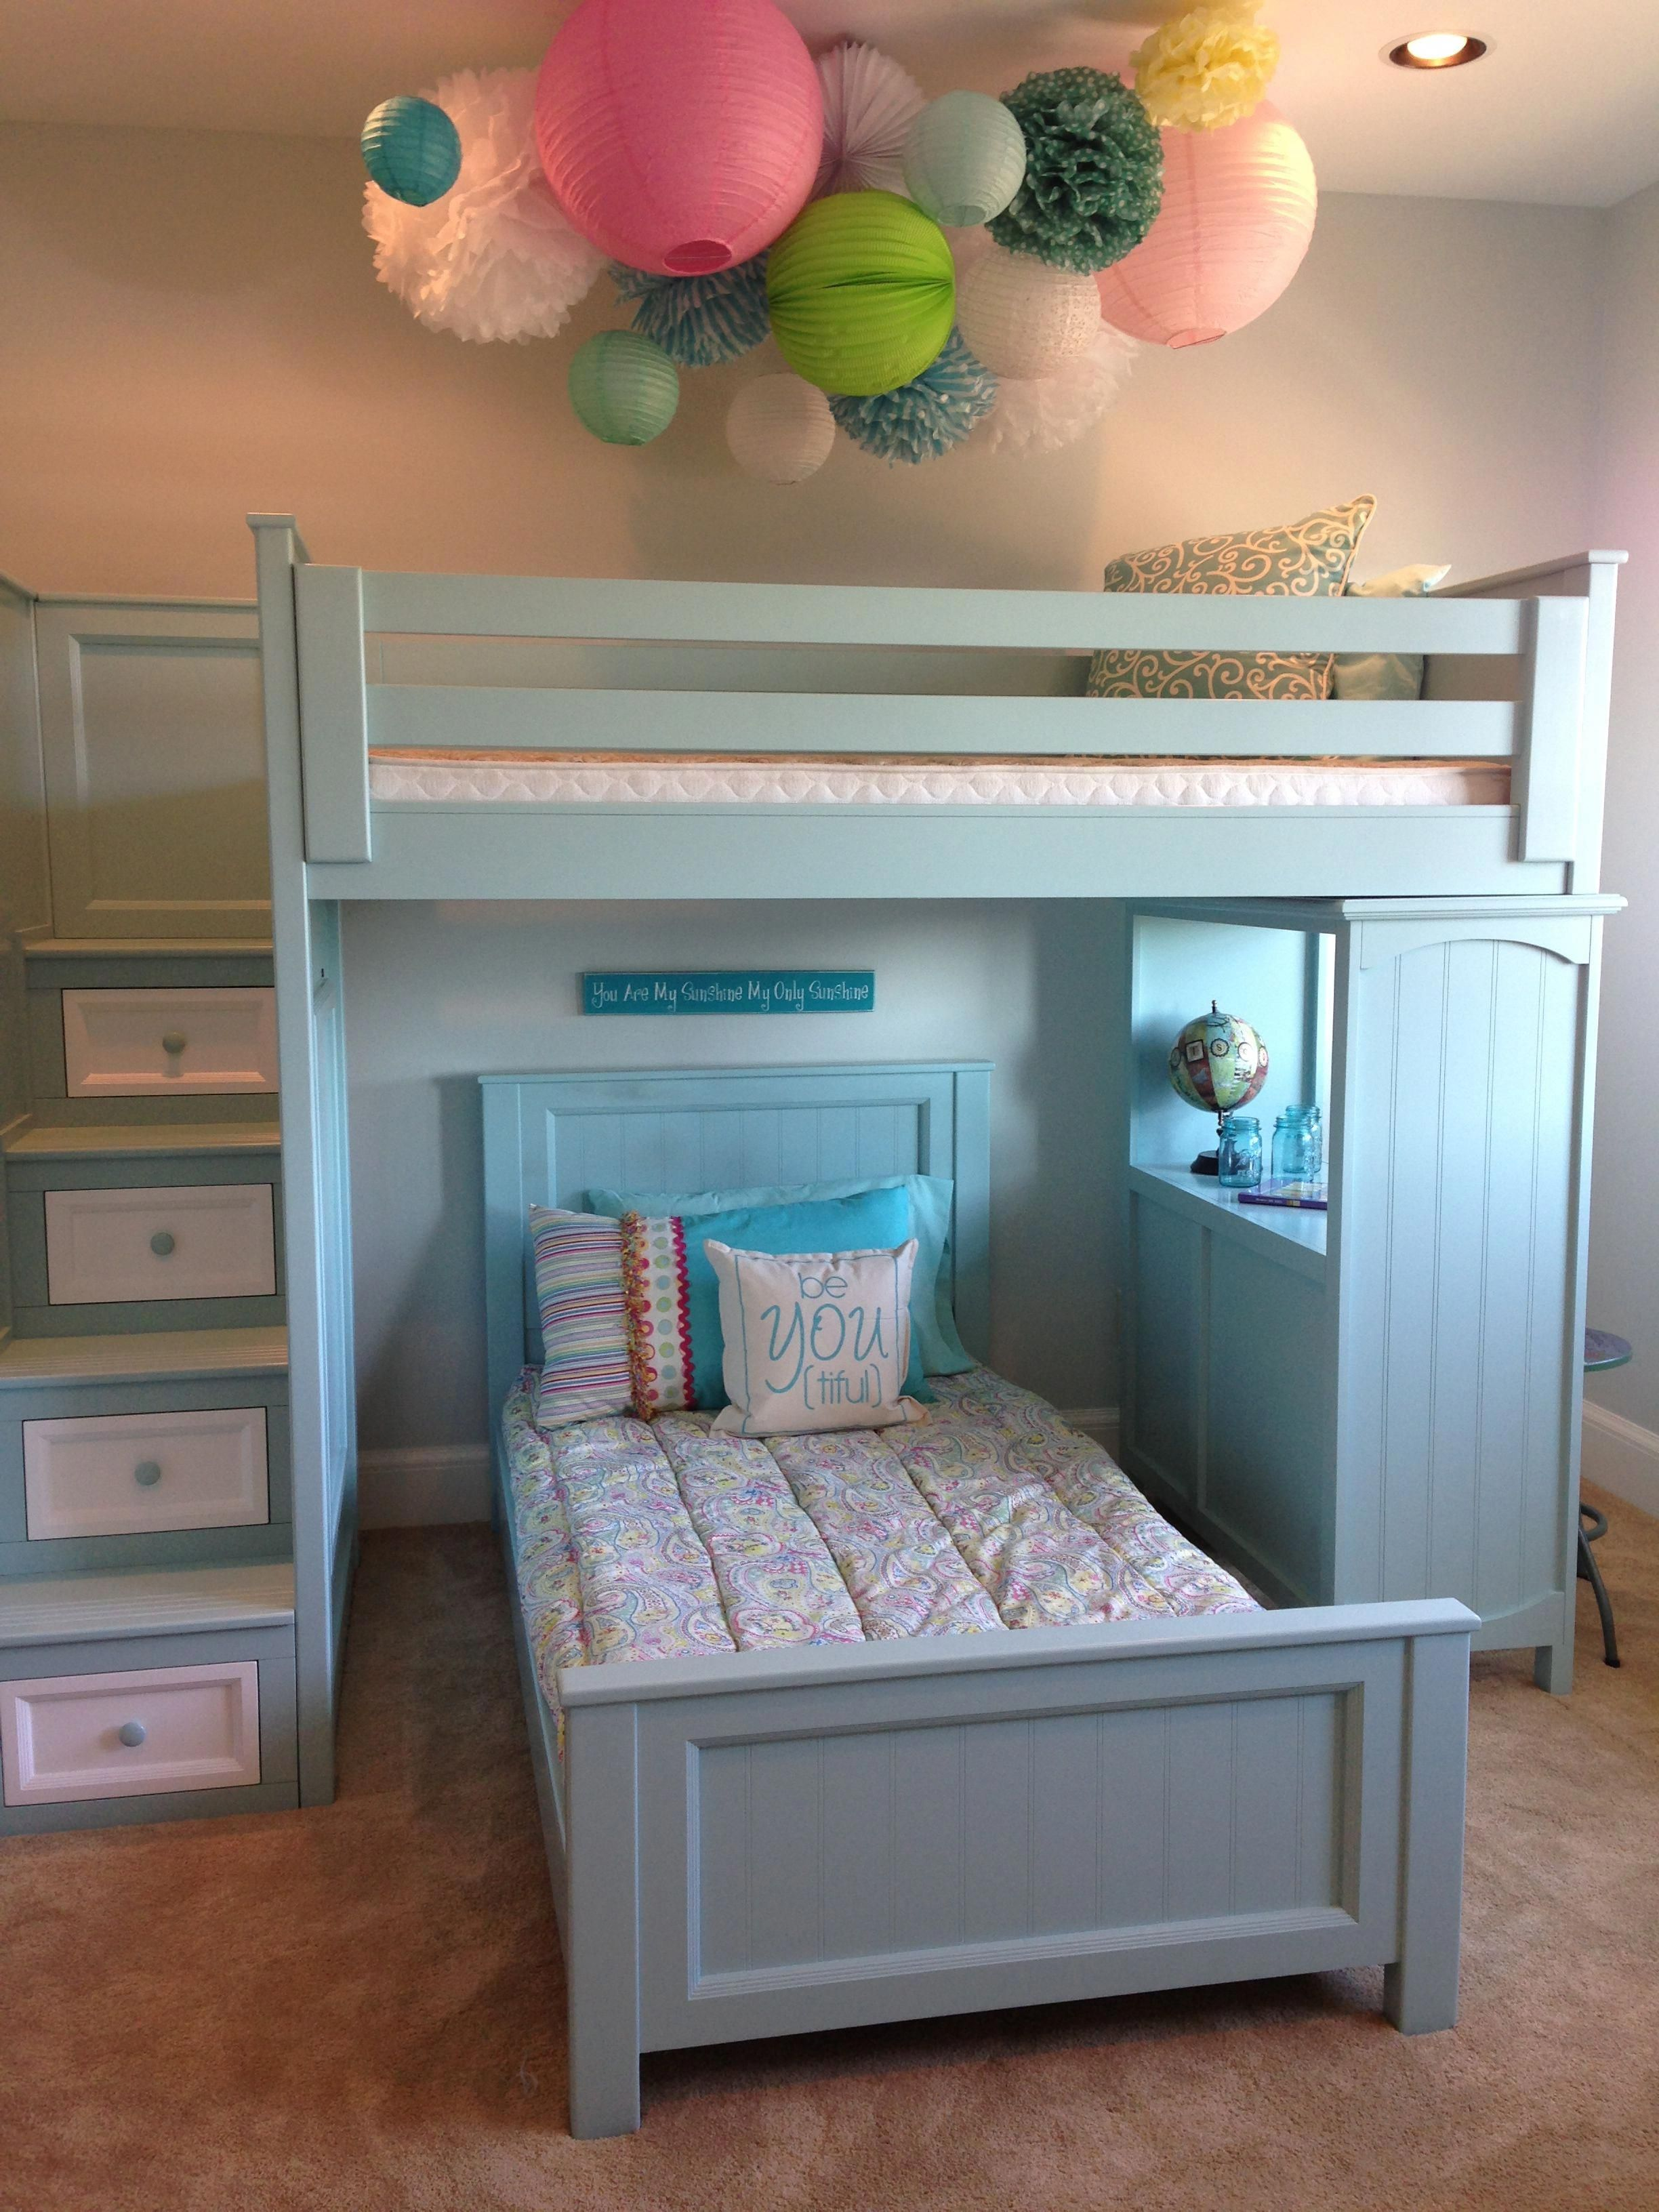 This Sydney Bunk Bed Would Be So Cute For A Girls Room Great Colors And A Nice Place To Relax I Love Girls Bunk Beds Kids Bunk Beds Bunk Beds